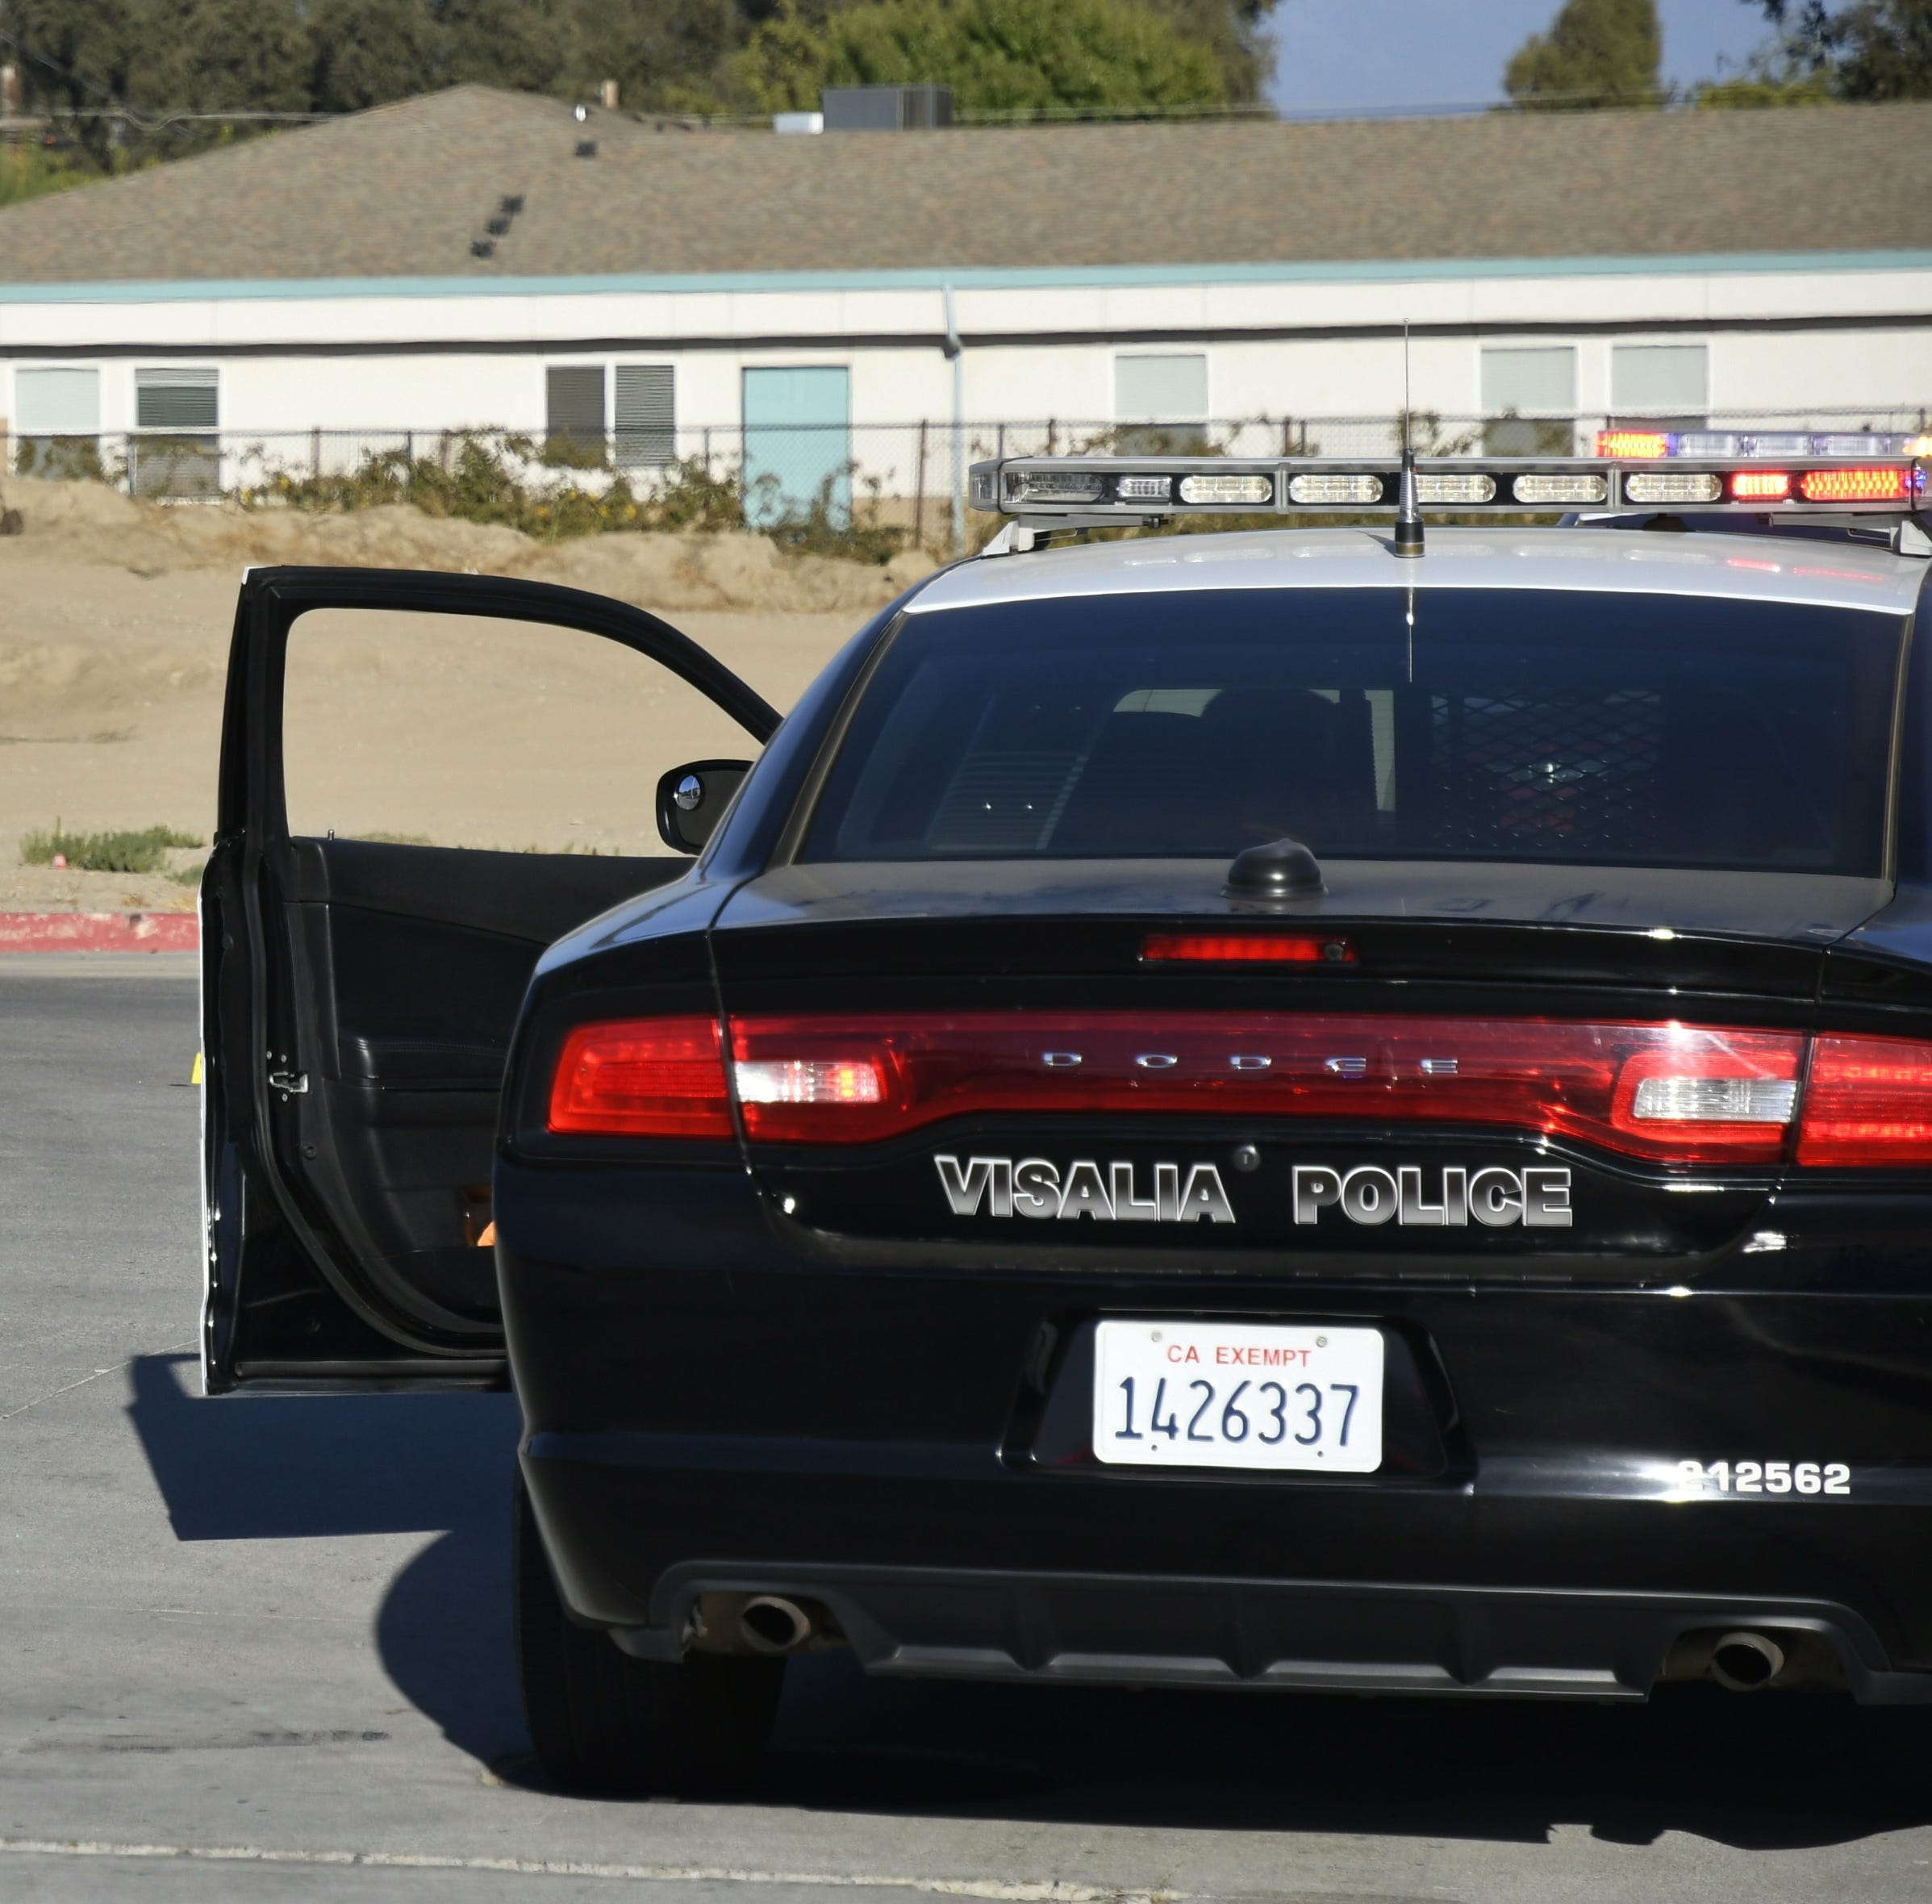 UPDATE: Visalia police identify suspect in officer-involved shooting